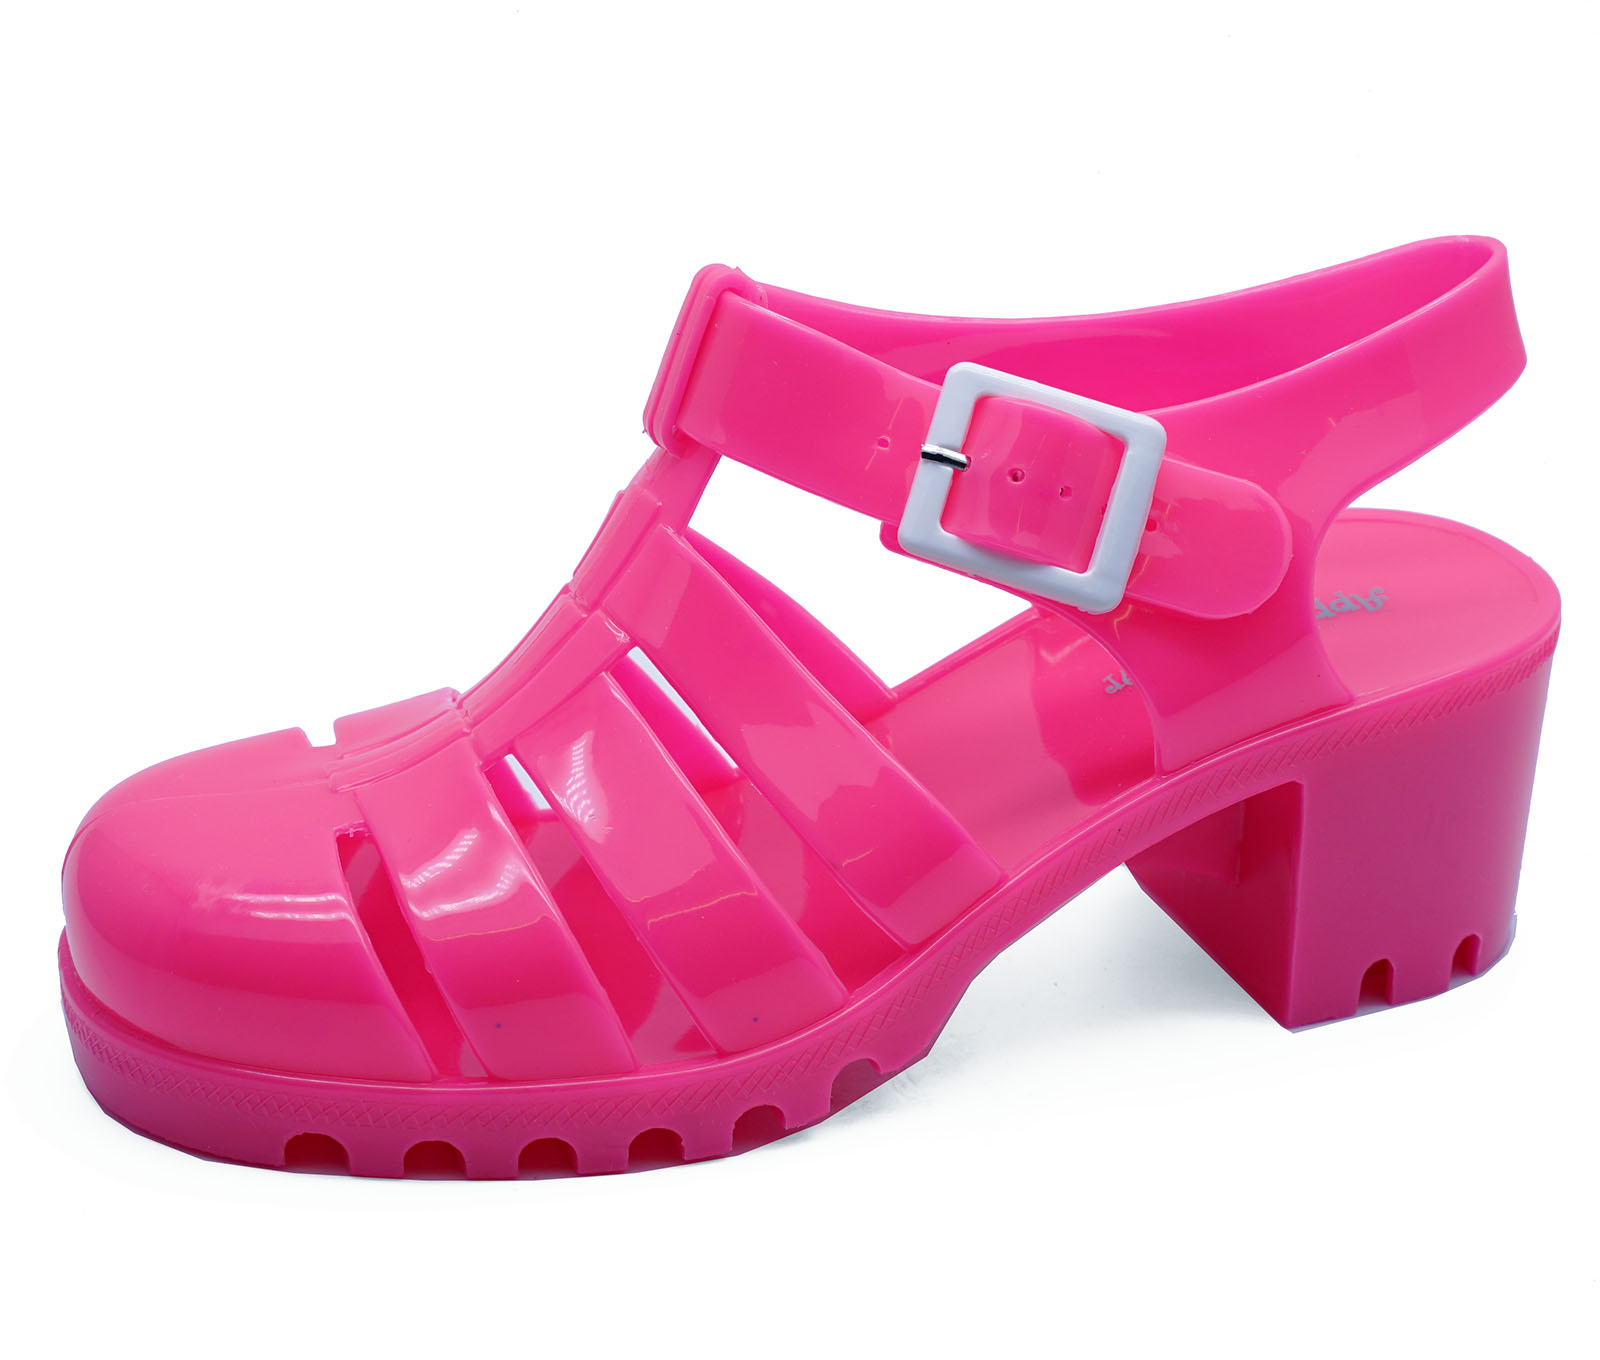 fe0dbc1f80f WOMENS PINK CHUNKY HEEL PLATFORM JELLY HOLIDAY SANDALS PUMPS SHOES ...